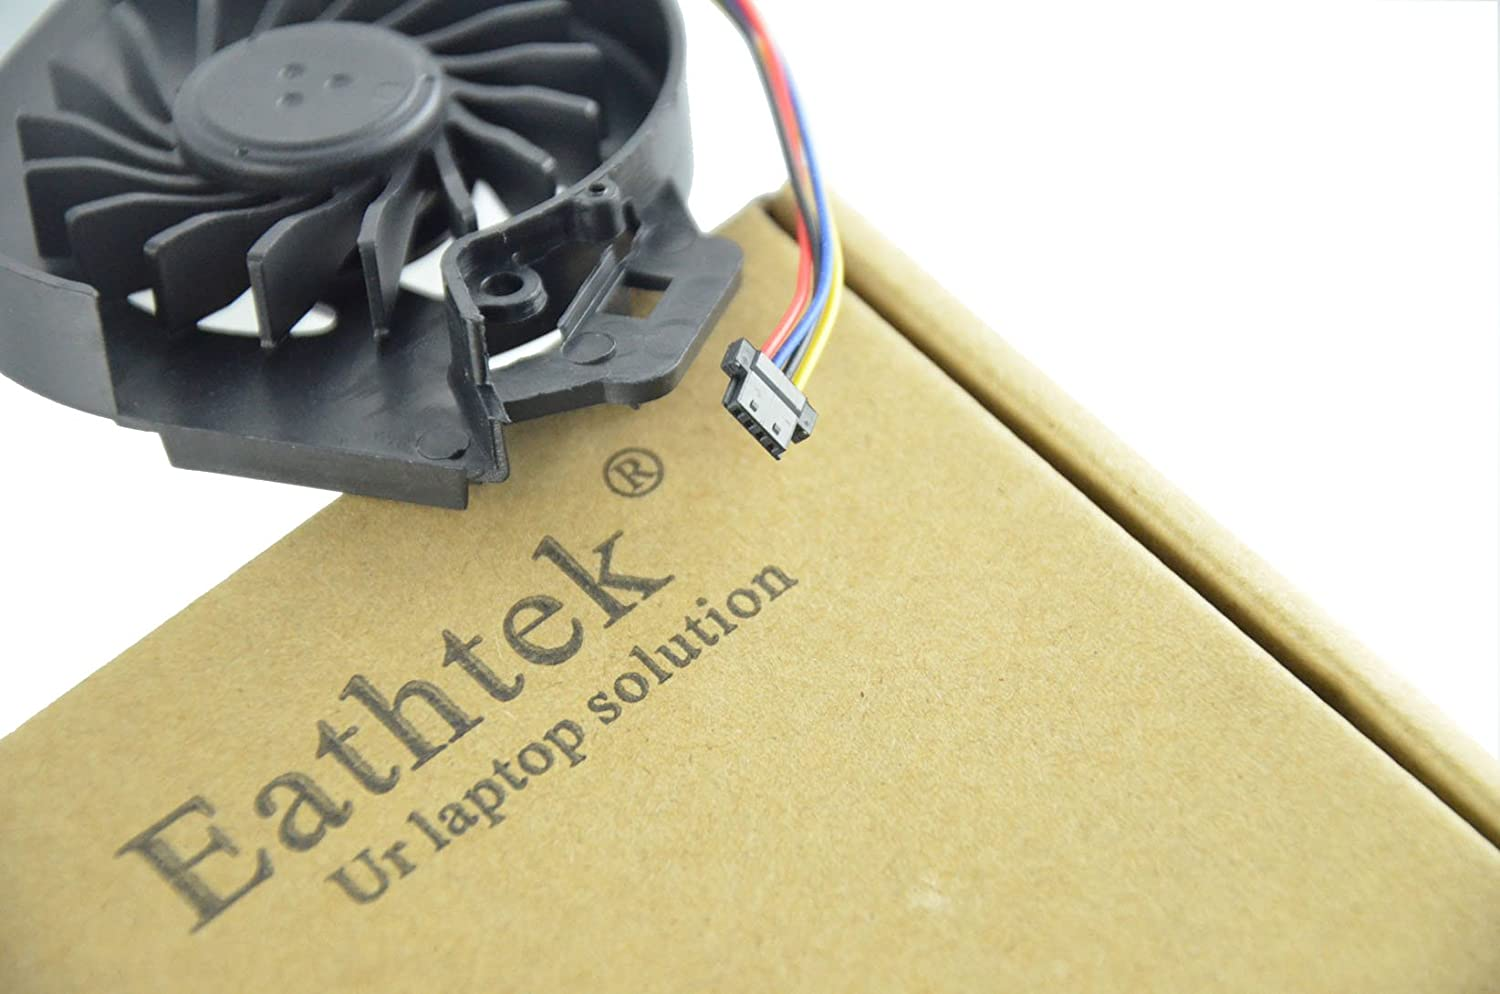 SUNMALL dv7 Fan Replacement for hp Laptop New CPU Cooling Fan for HP Pavilion dv7-6b01xx dv7-6b32us dv7-6b55dx dv7-6b56nr dv7-6b57nr dv7-6b63us dv7-6b71nr dv7-6b73nr